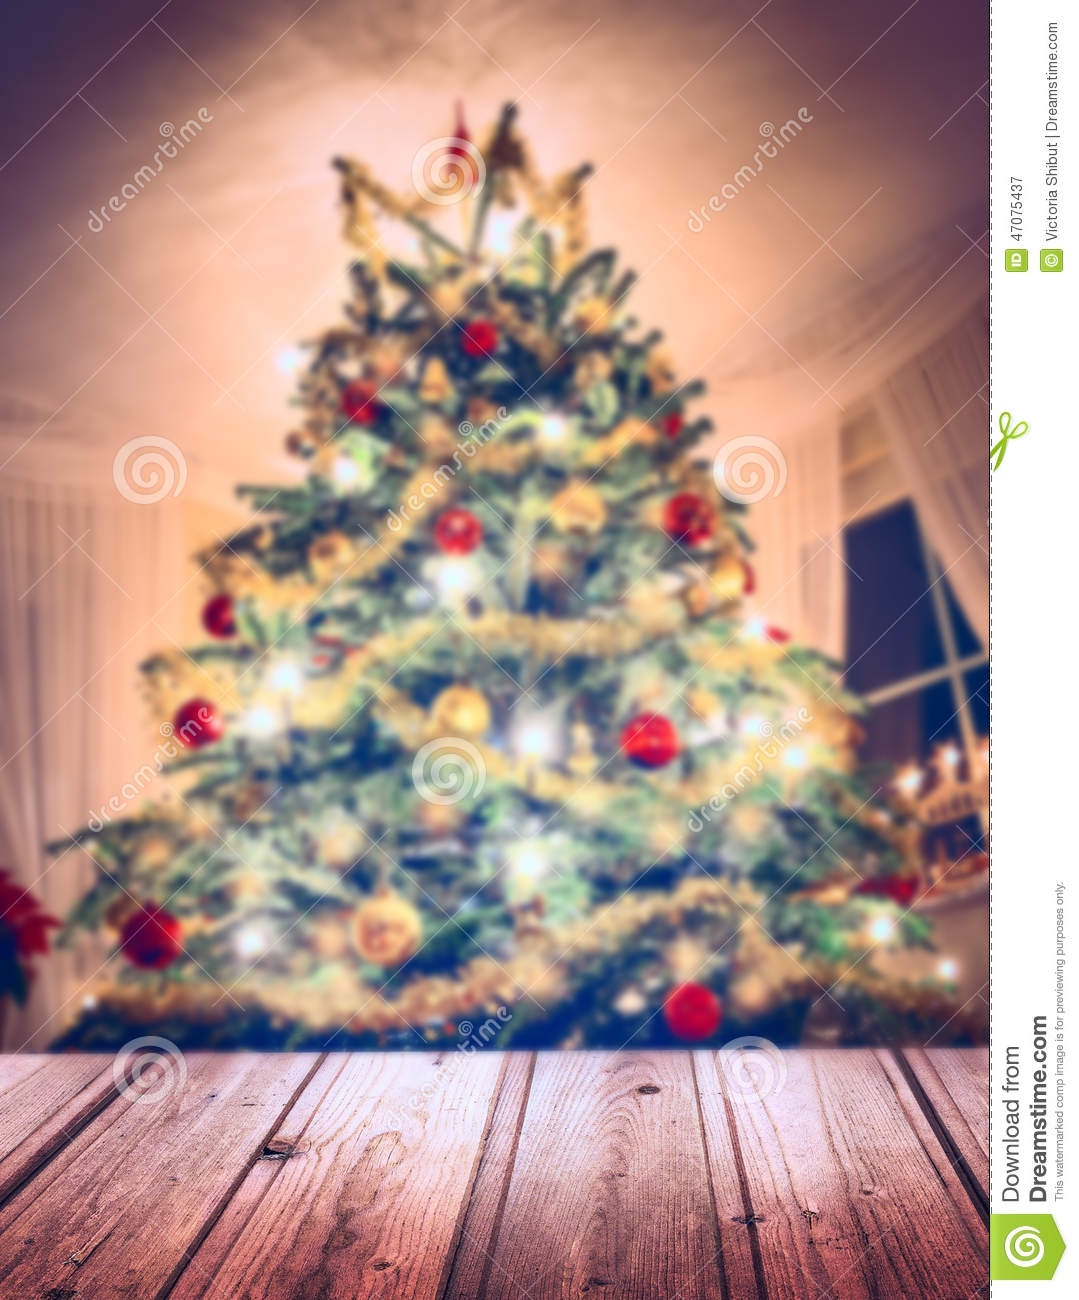 Christmas tree with decorations and candles